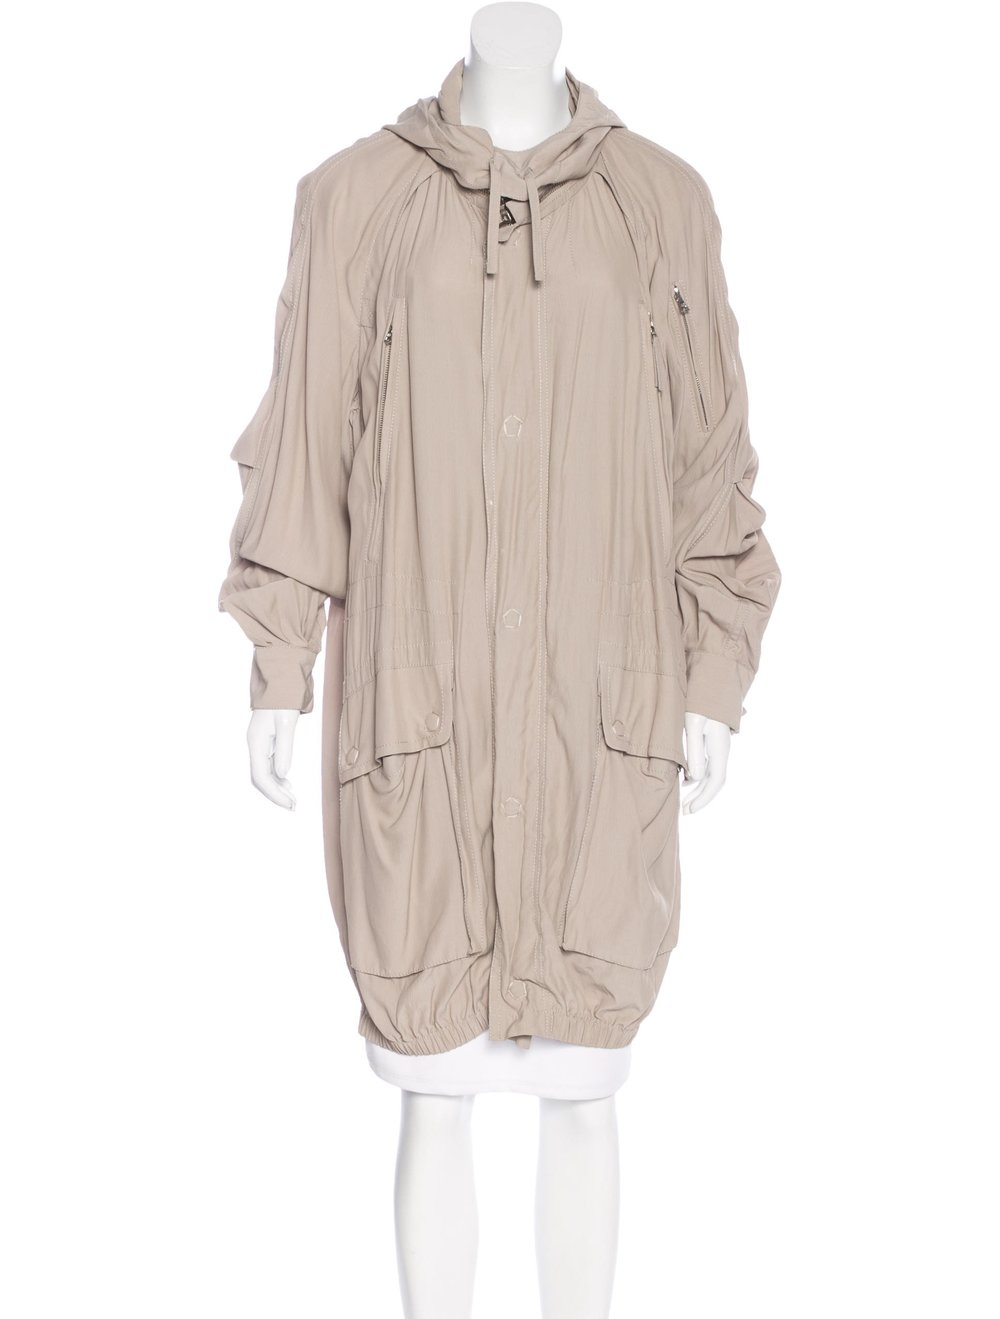 MARC JACOBS Hooded Anorak Jacket; Size:S; $147.50